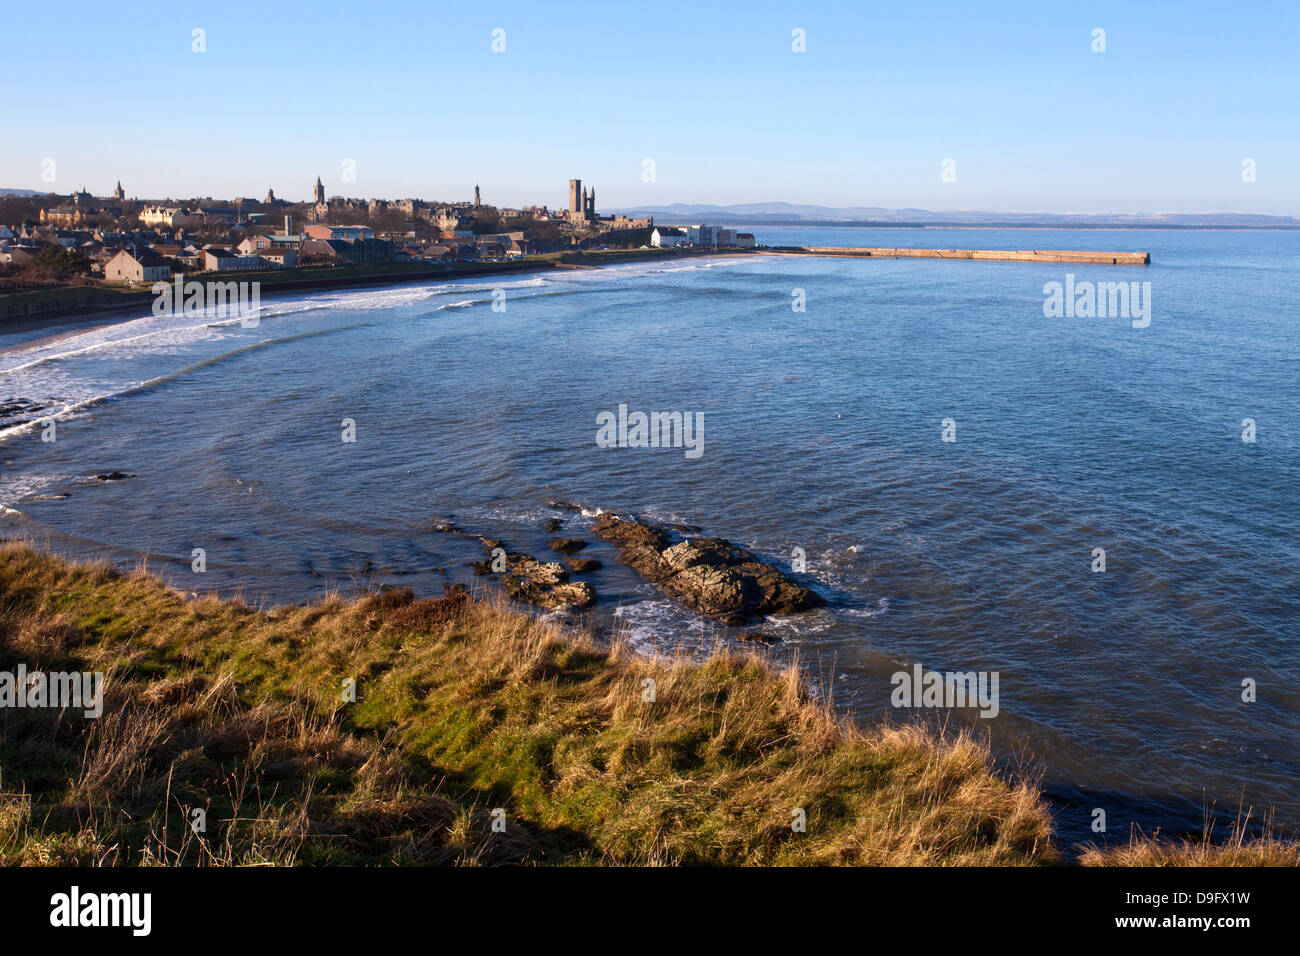 East Sands and Pier from the Clifftop, St. Andrews, Fife, Scotland, UK Stock Photo